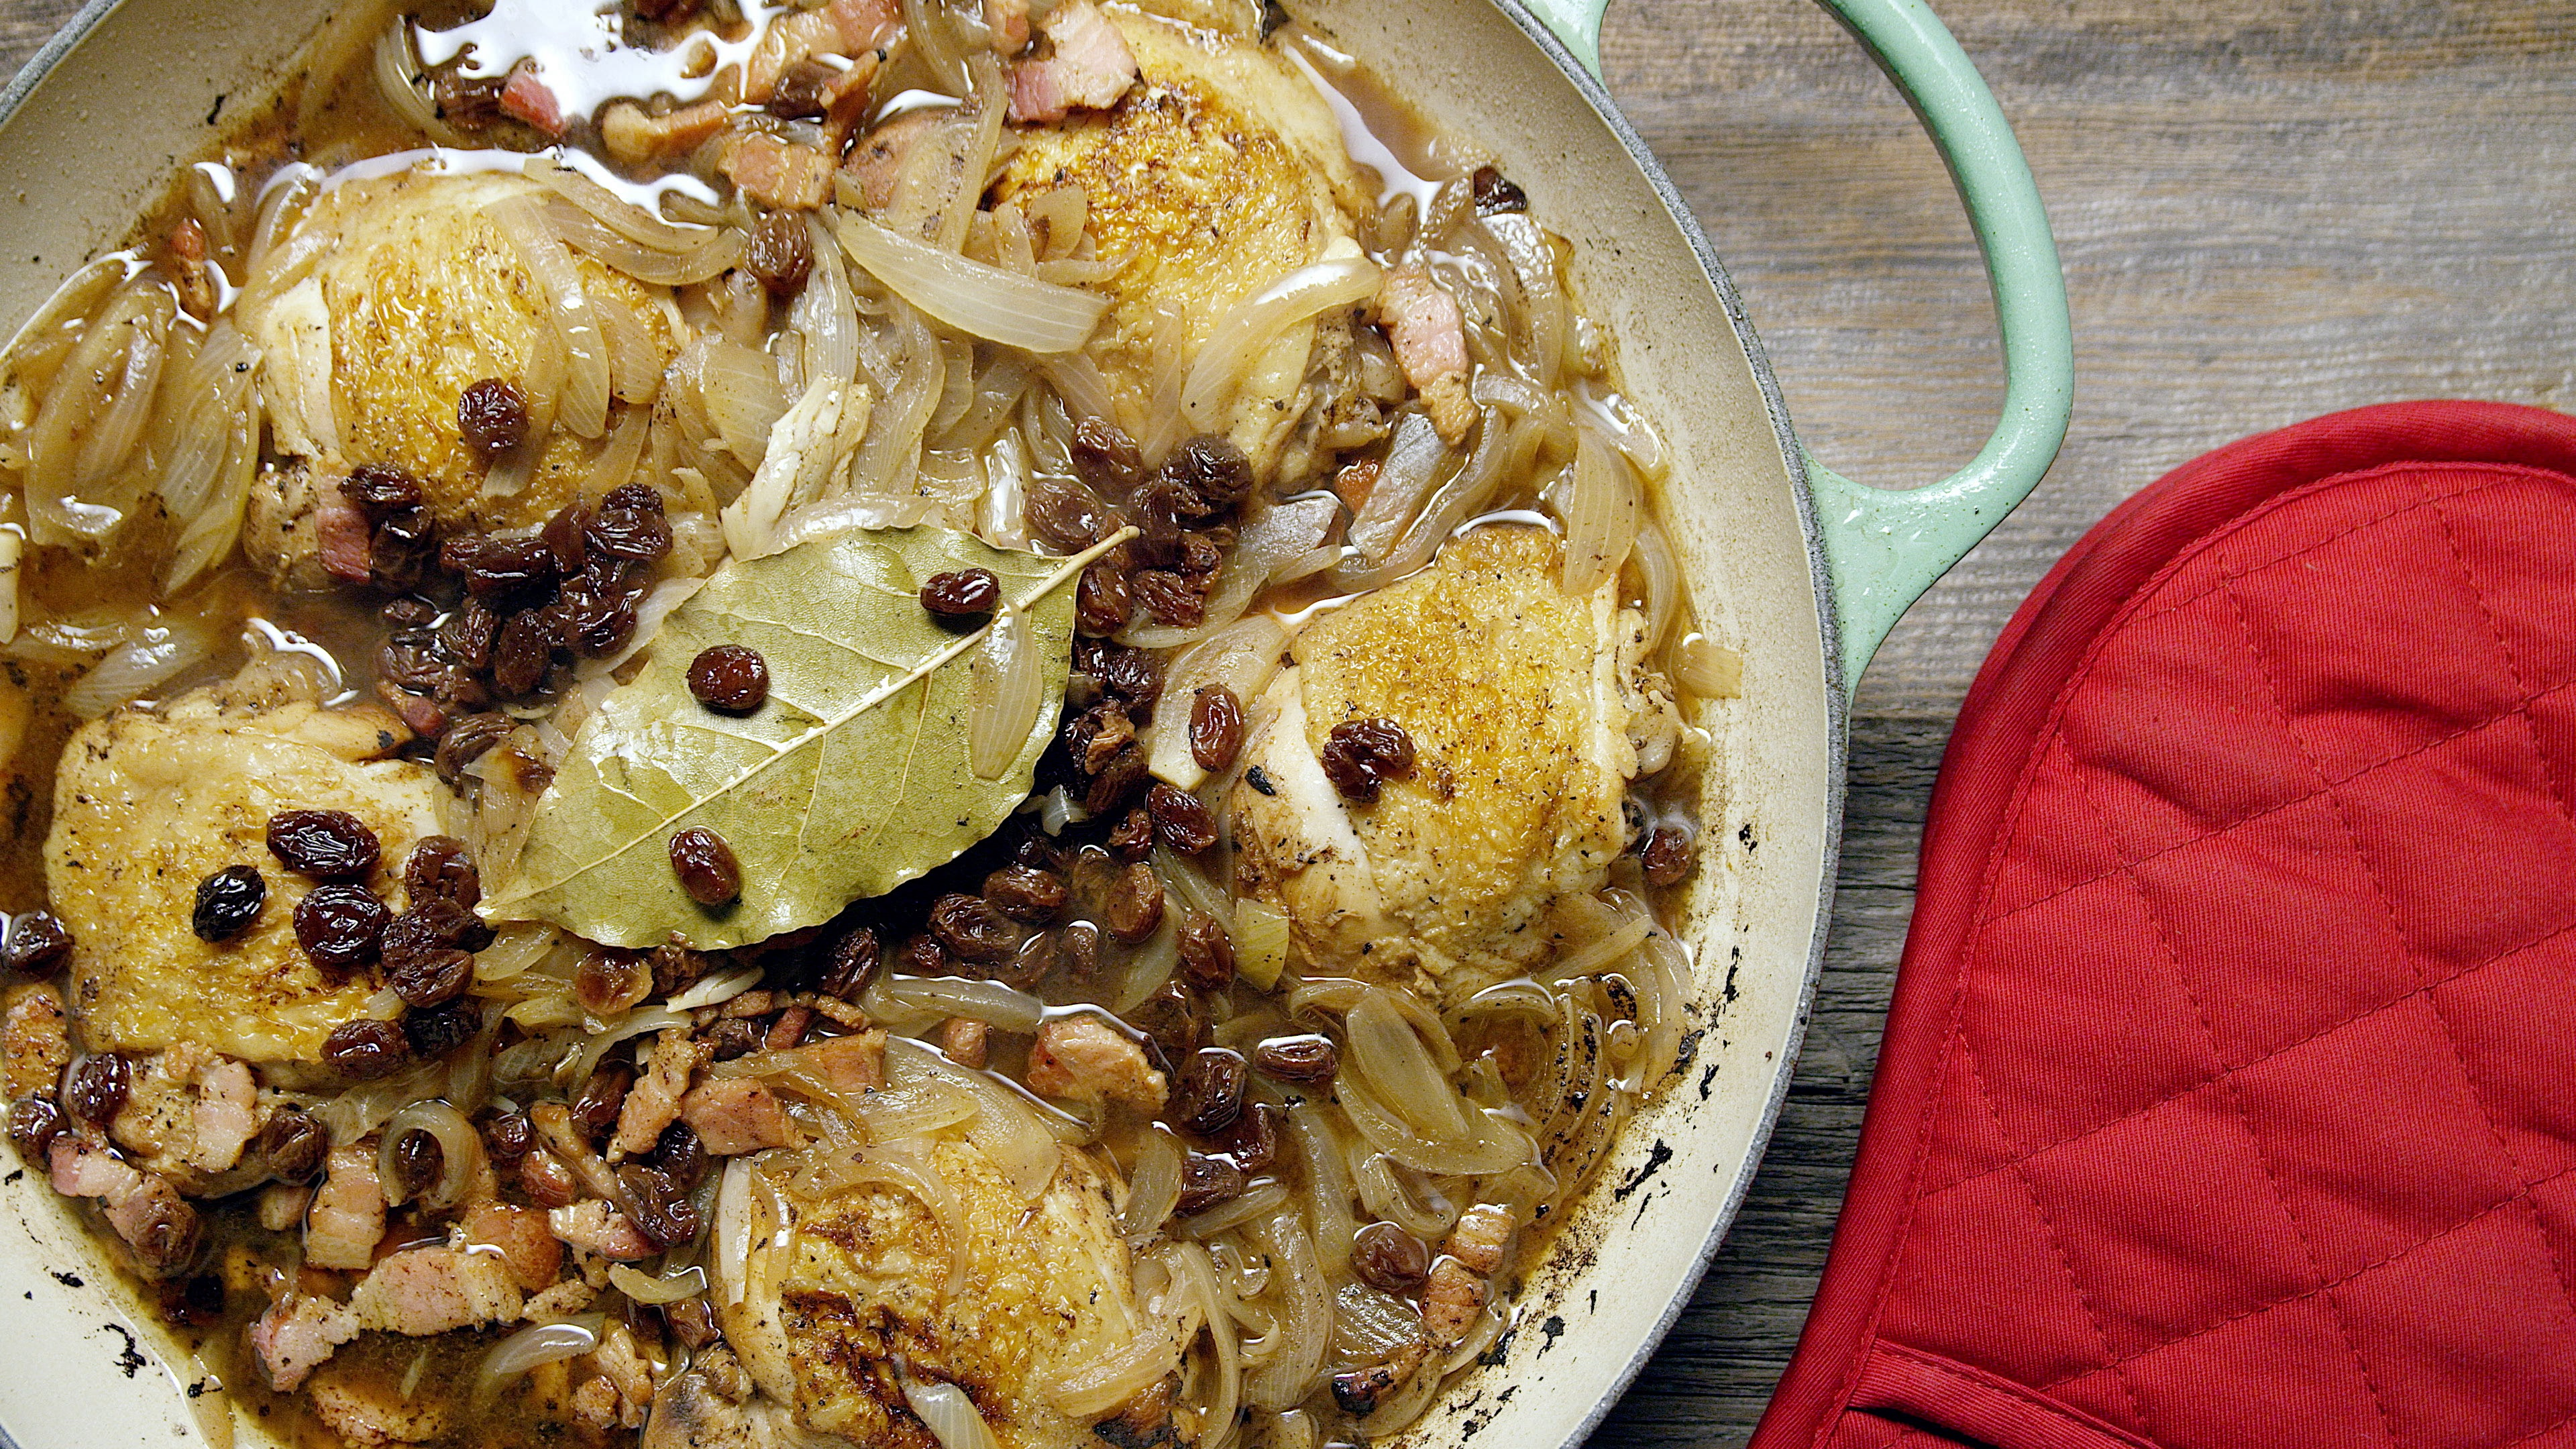 How to Make Vinegar-Braised Chicken and Onions